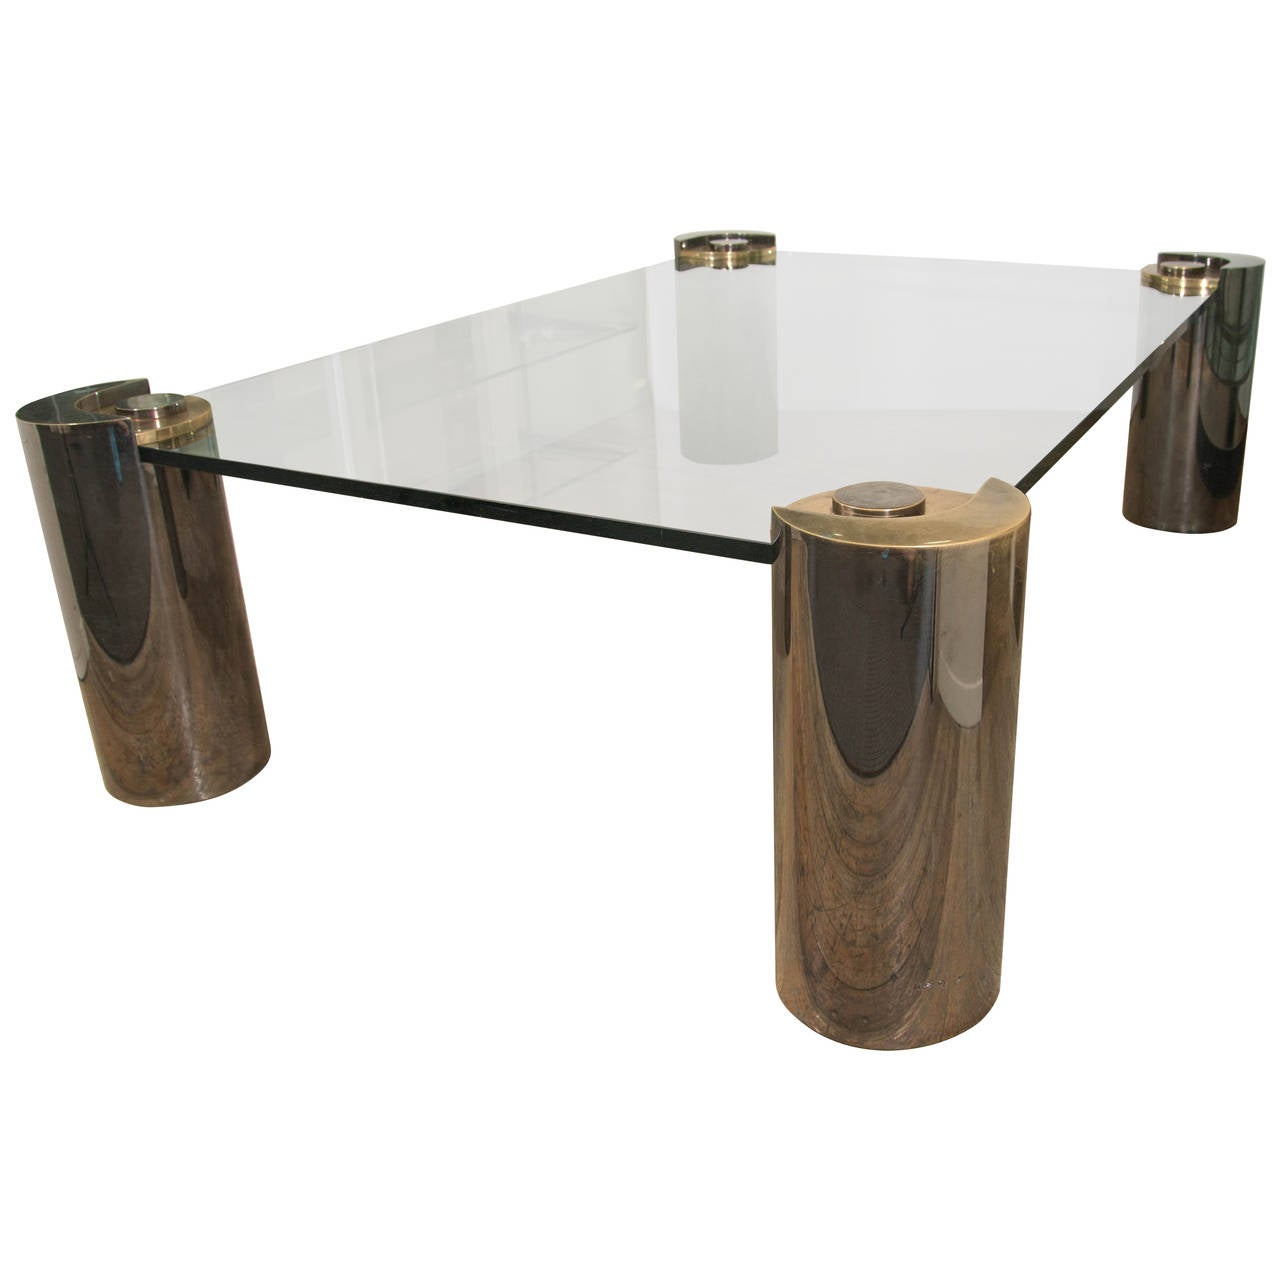 Karl Springer Glass Top Coffee Table With Cylindrical Chrome And Brass Legs For Sale At 1stdibs